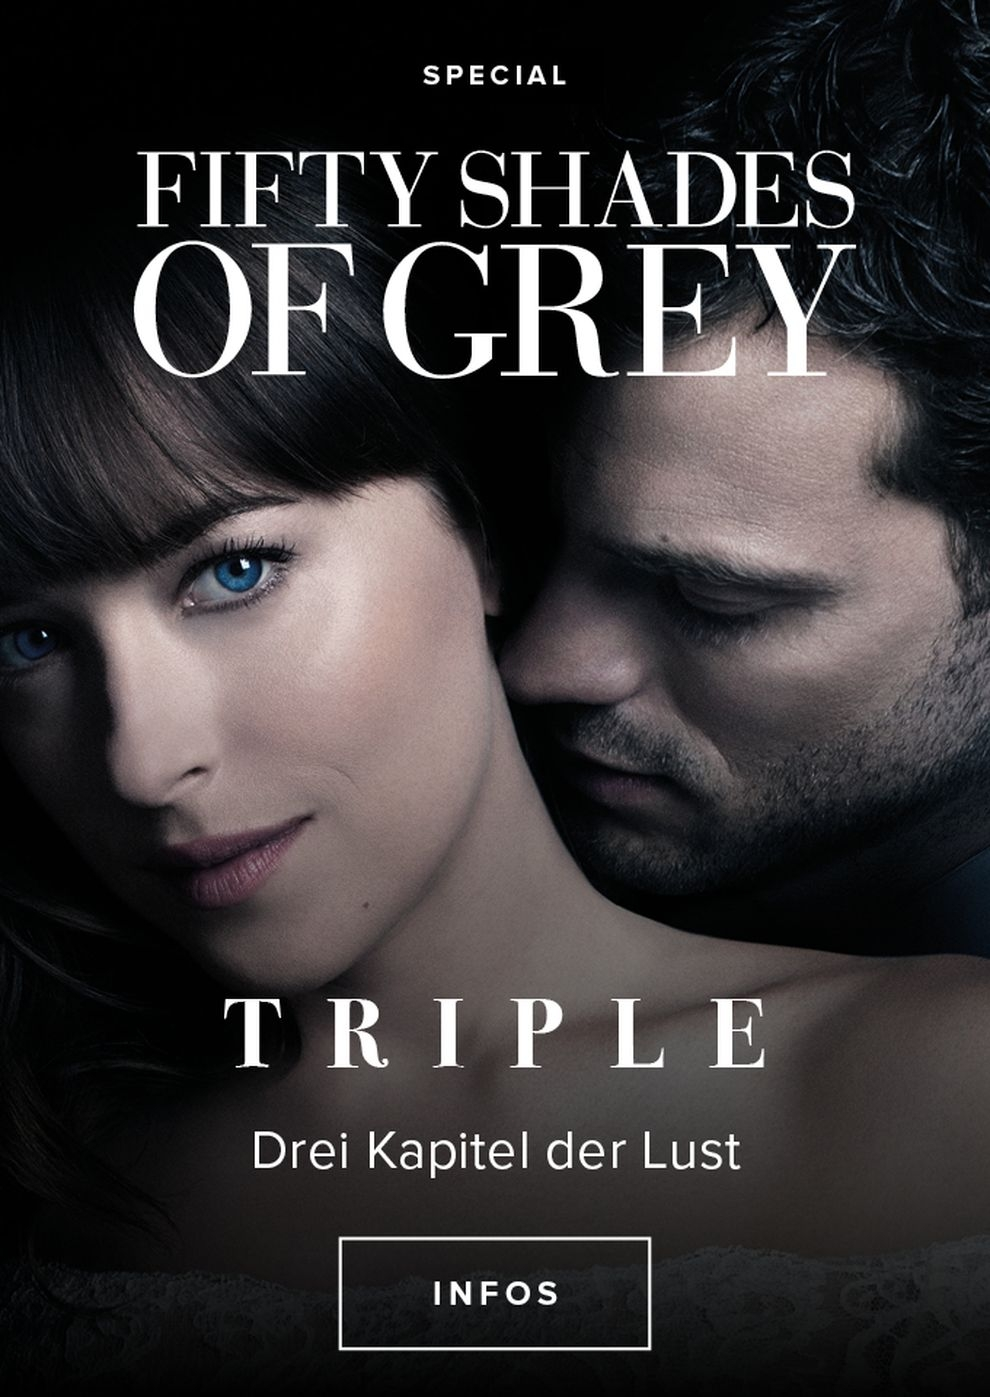 Fifty Shades of Grey Triple (Poster)